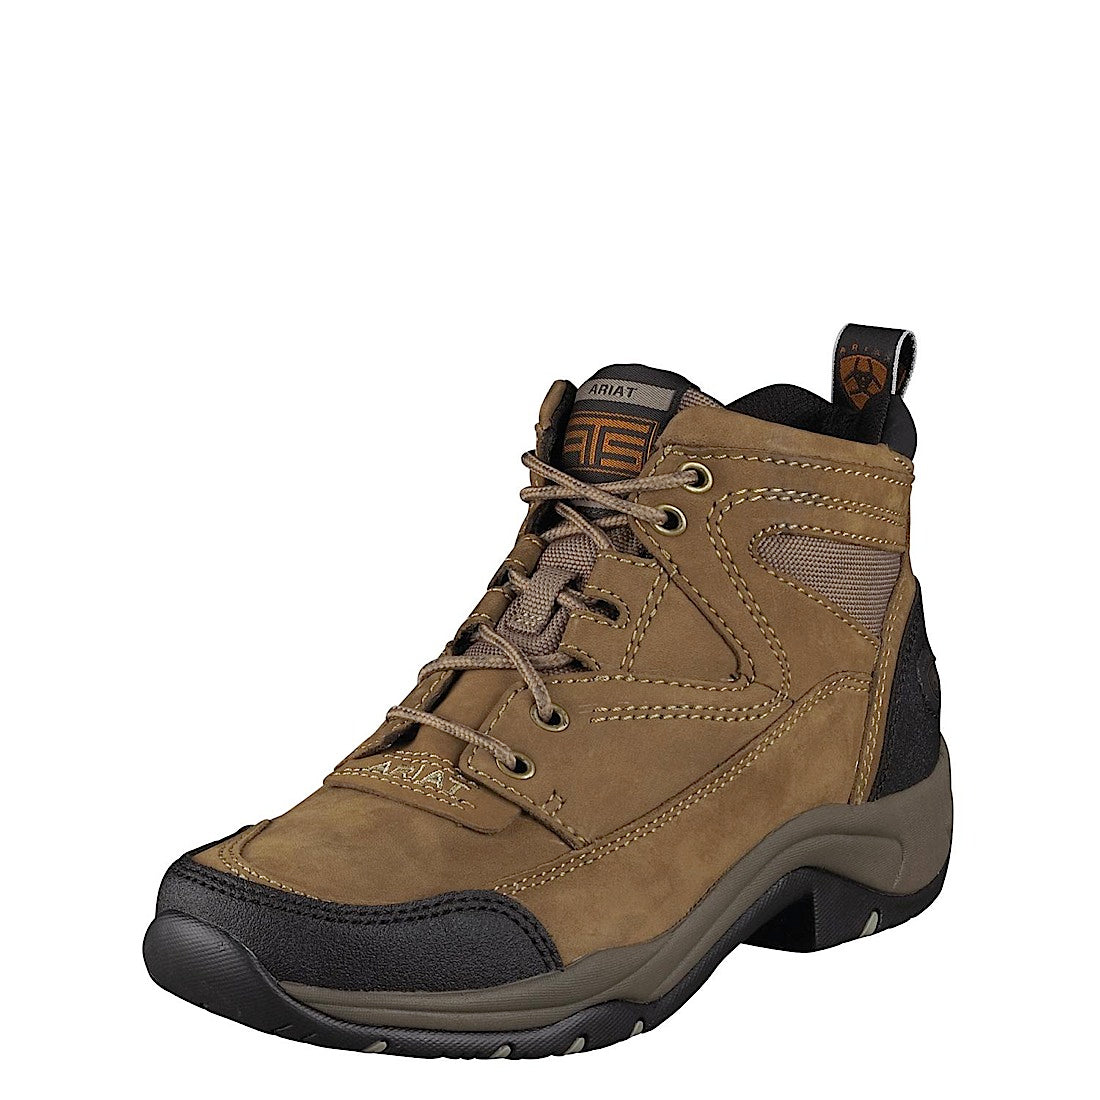 Ariat Women's Terrain Taupe